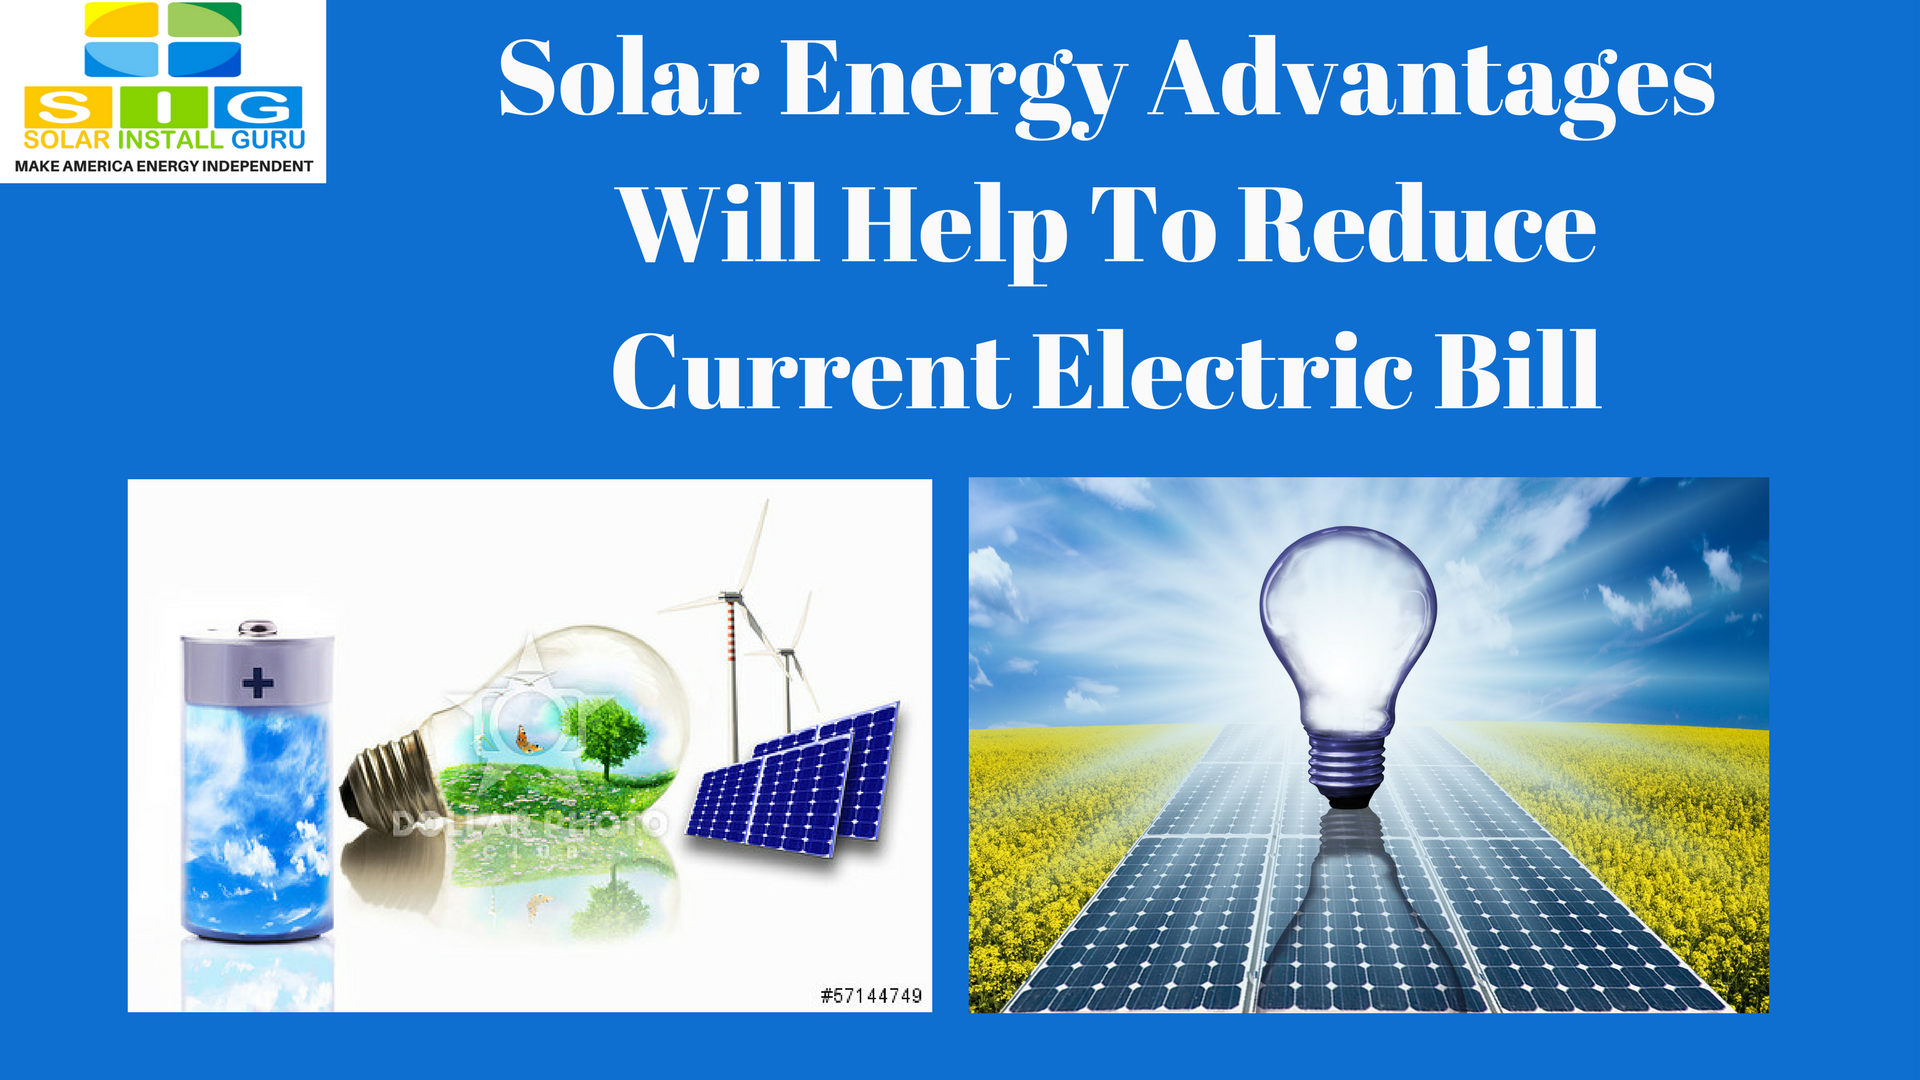 Solar energy advantages will help to reduce current Benefits of going solar